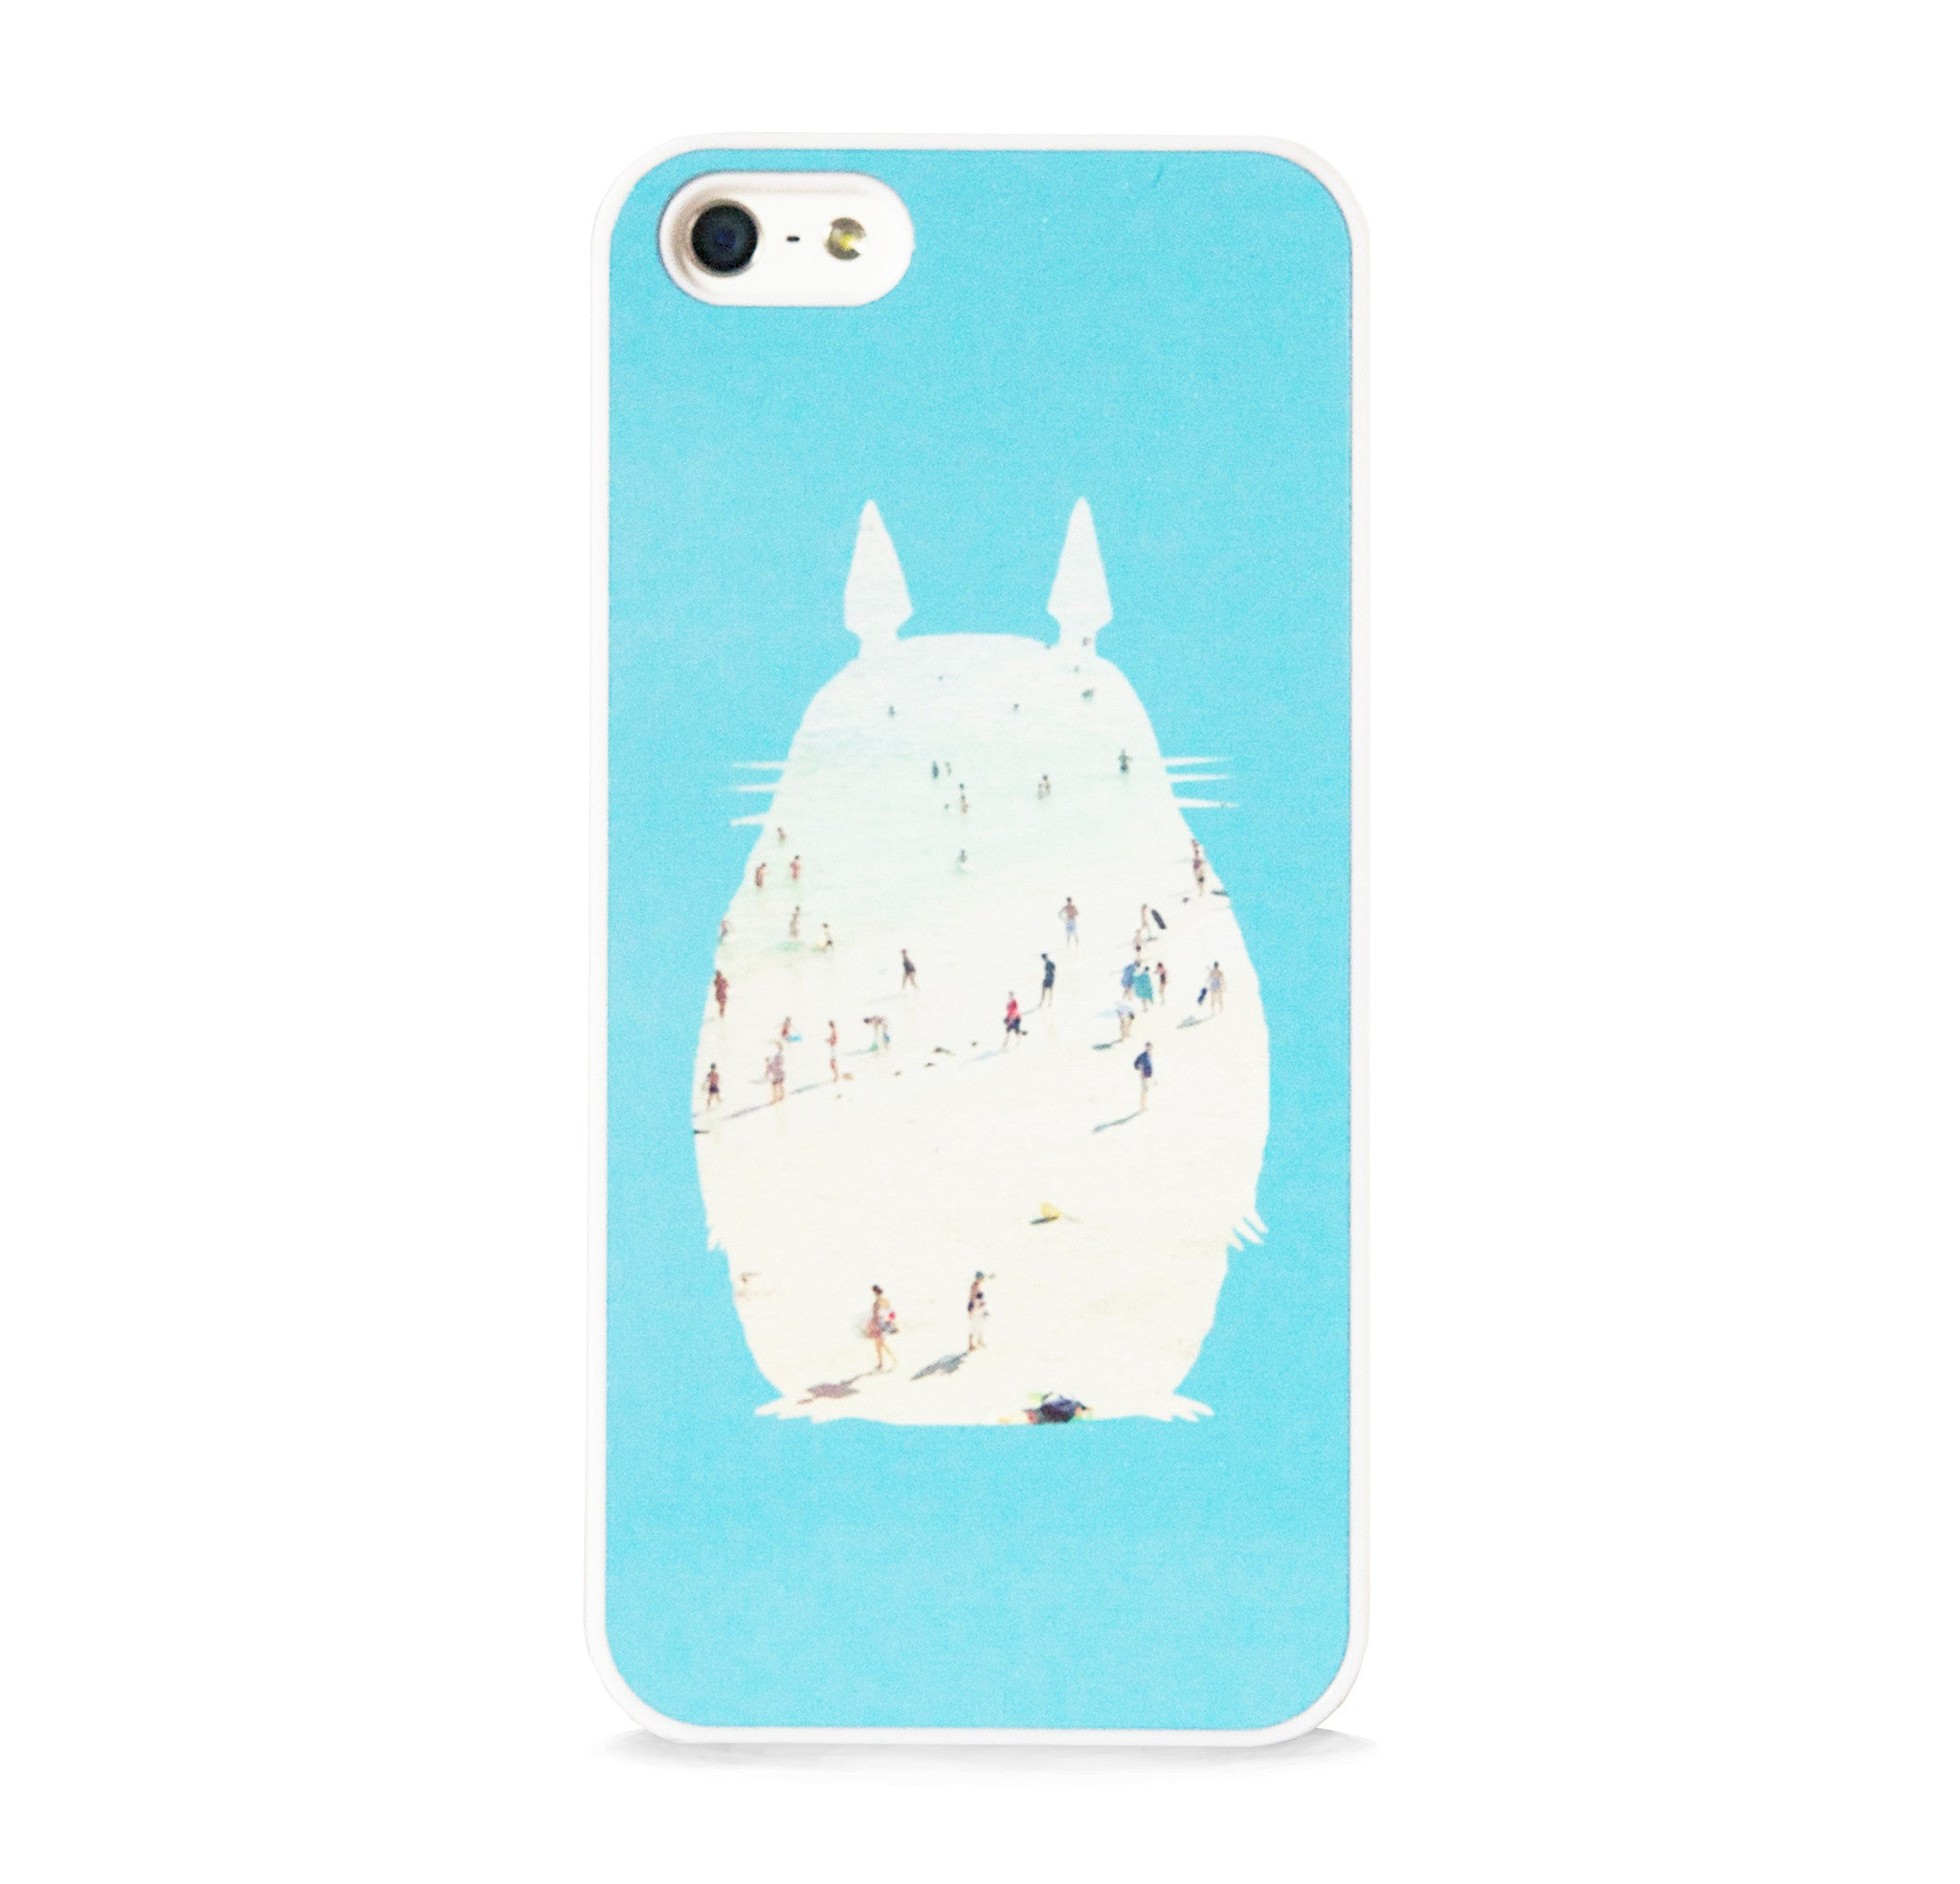 TOTORO BLUE SUMMER IPHONE 5/5S CASE